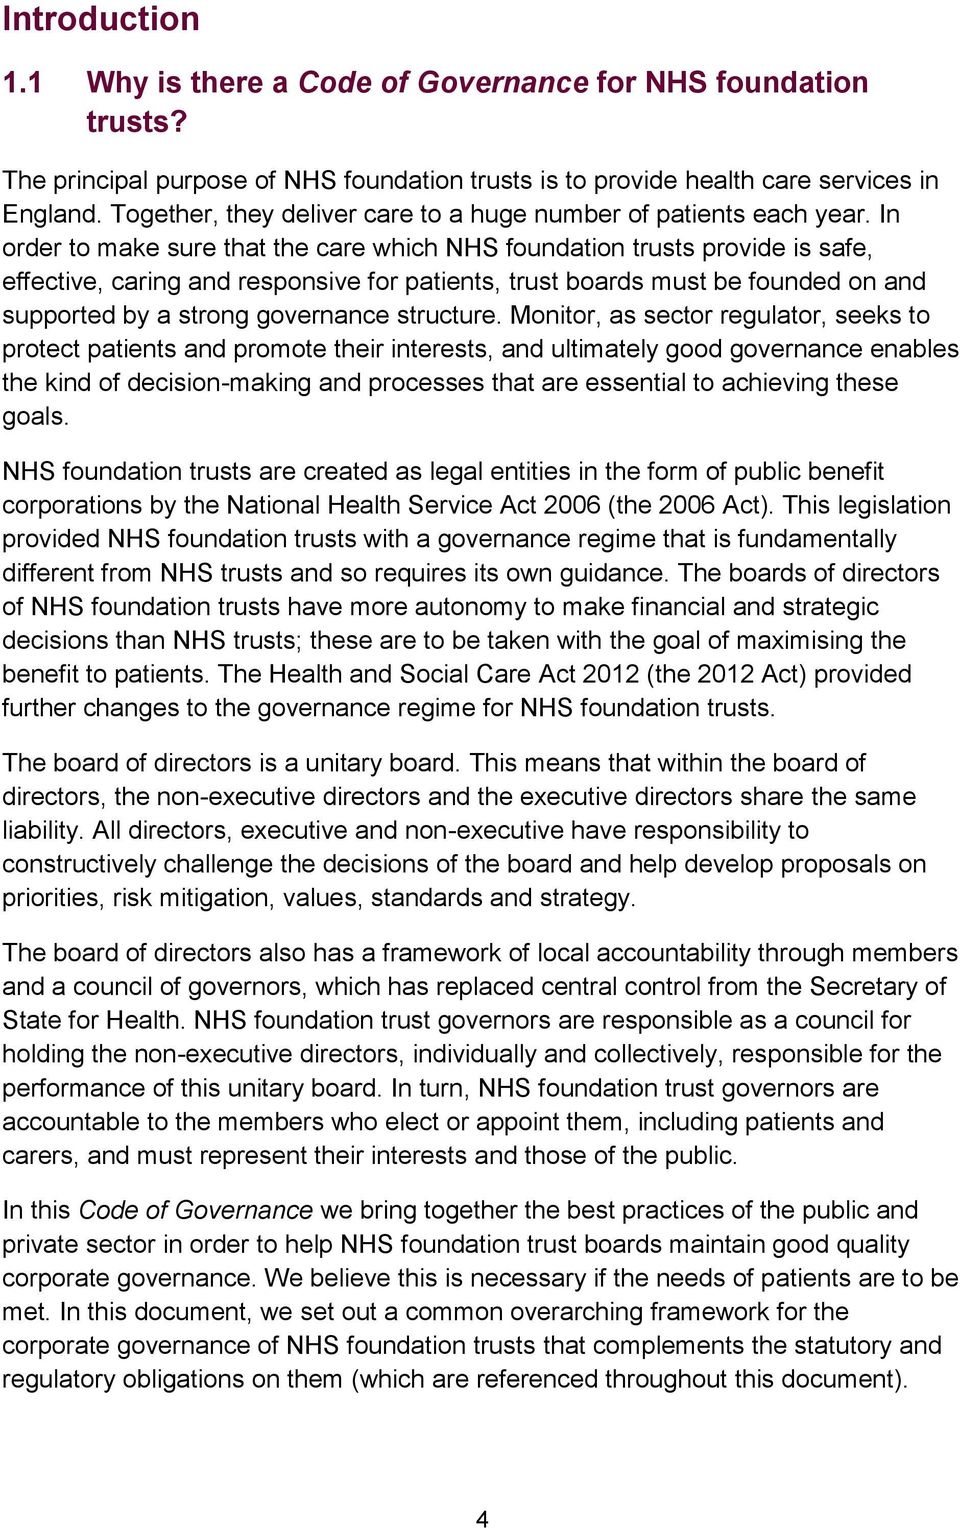 In order to make sure that the care which NHS foundation trusts provide is safe, effective, caring and responsive for patients, trust boards must be founded on and supported by a strong governance